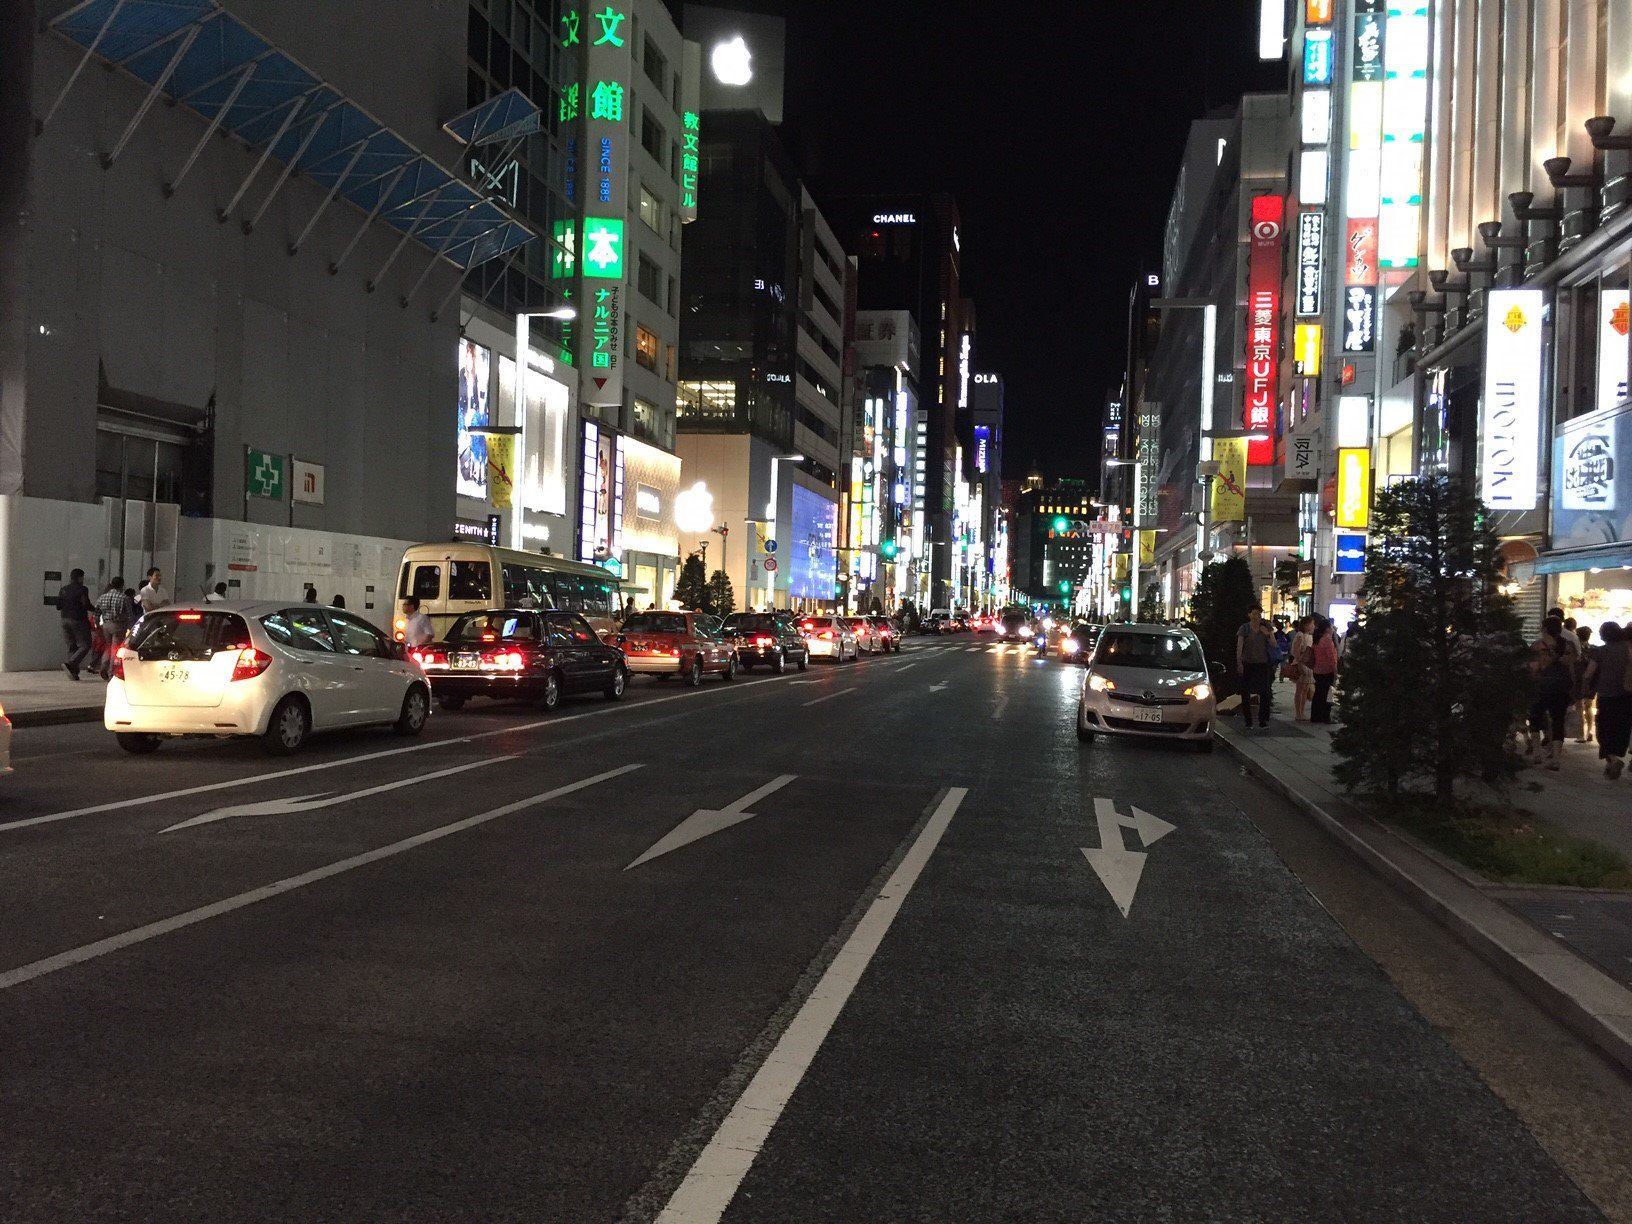 @remax : Fun fact: Like in England the Japanese drive on the left. #REMAXTokyo. Glad I'm not driving! https://t.co/iqZeJ3raVg Call Kari Sullivan at 904.923.5274 Re/Max Realtor